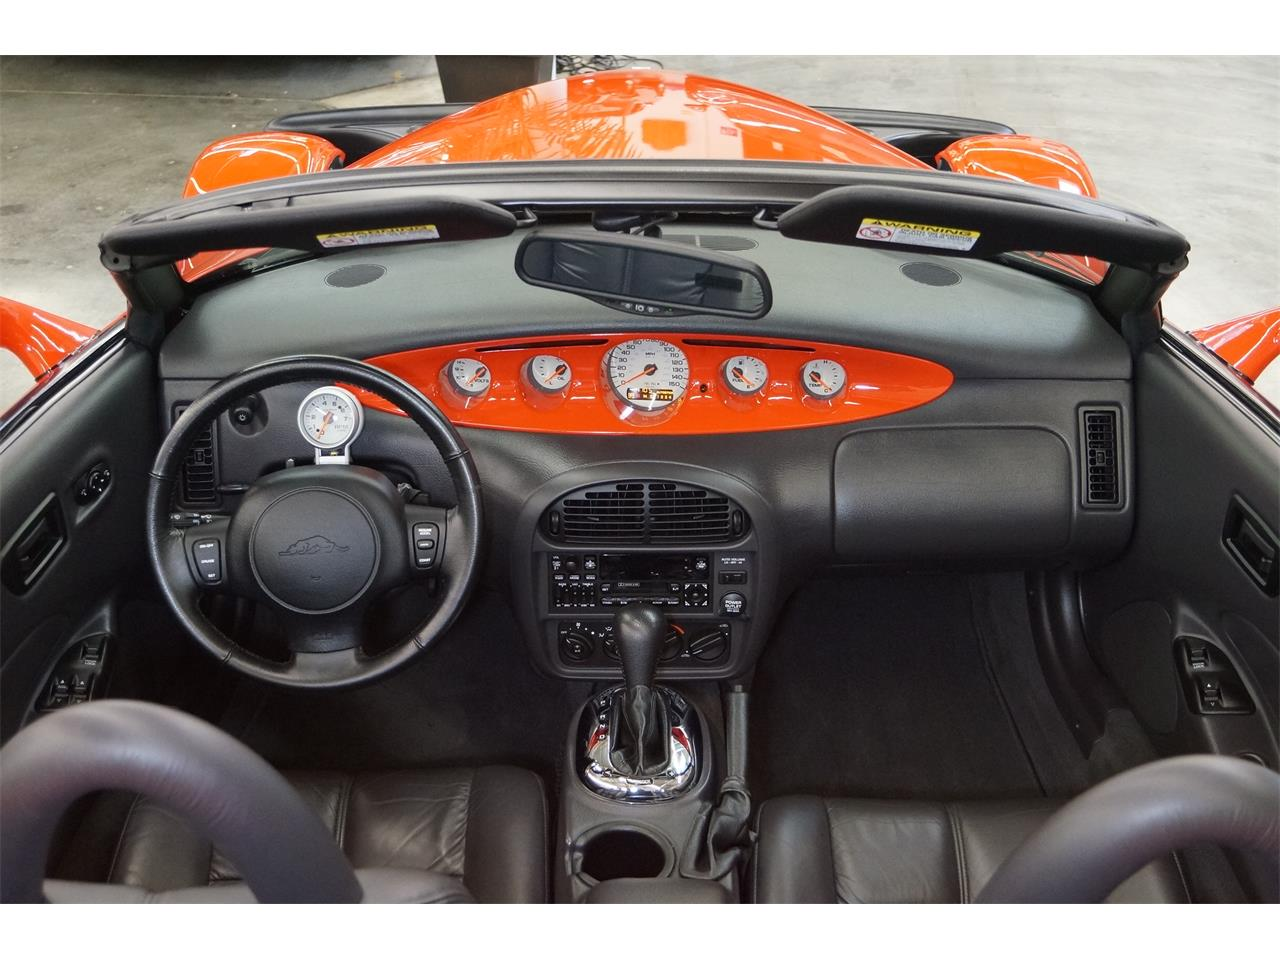 2000 Plymouth Prowler for sale in Thousand Oaks, CA – photo 13